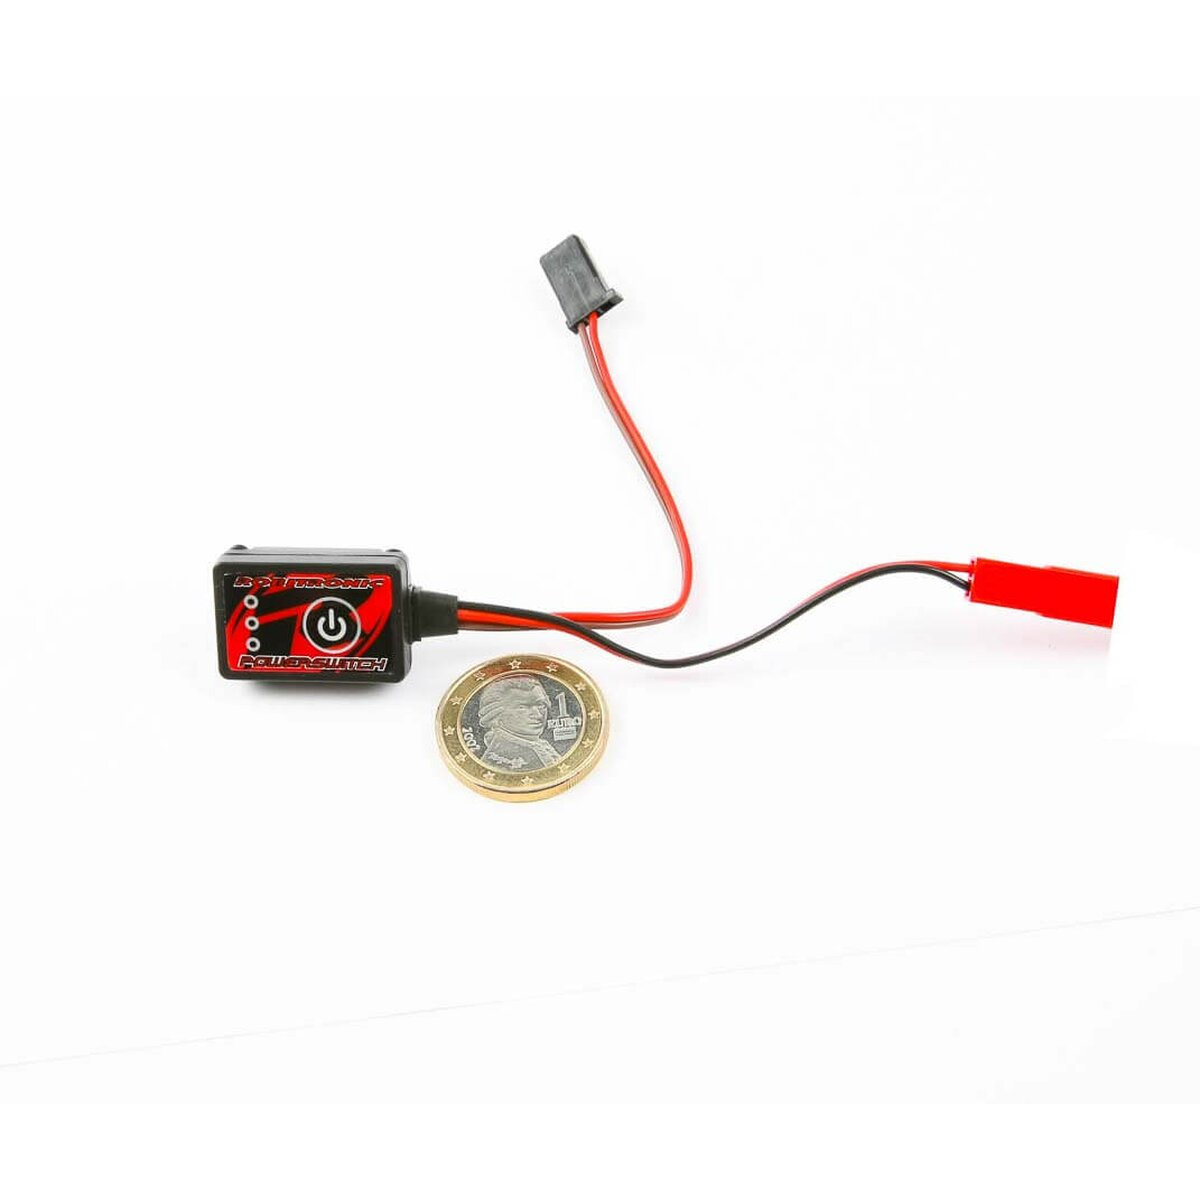 Robitronic Electrical Switch With Voltage Indicator